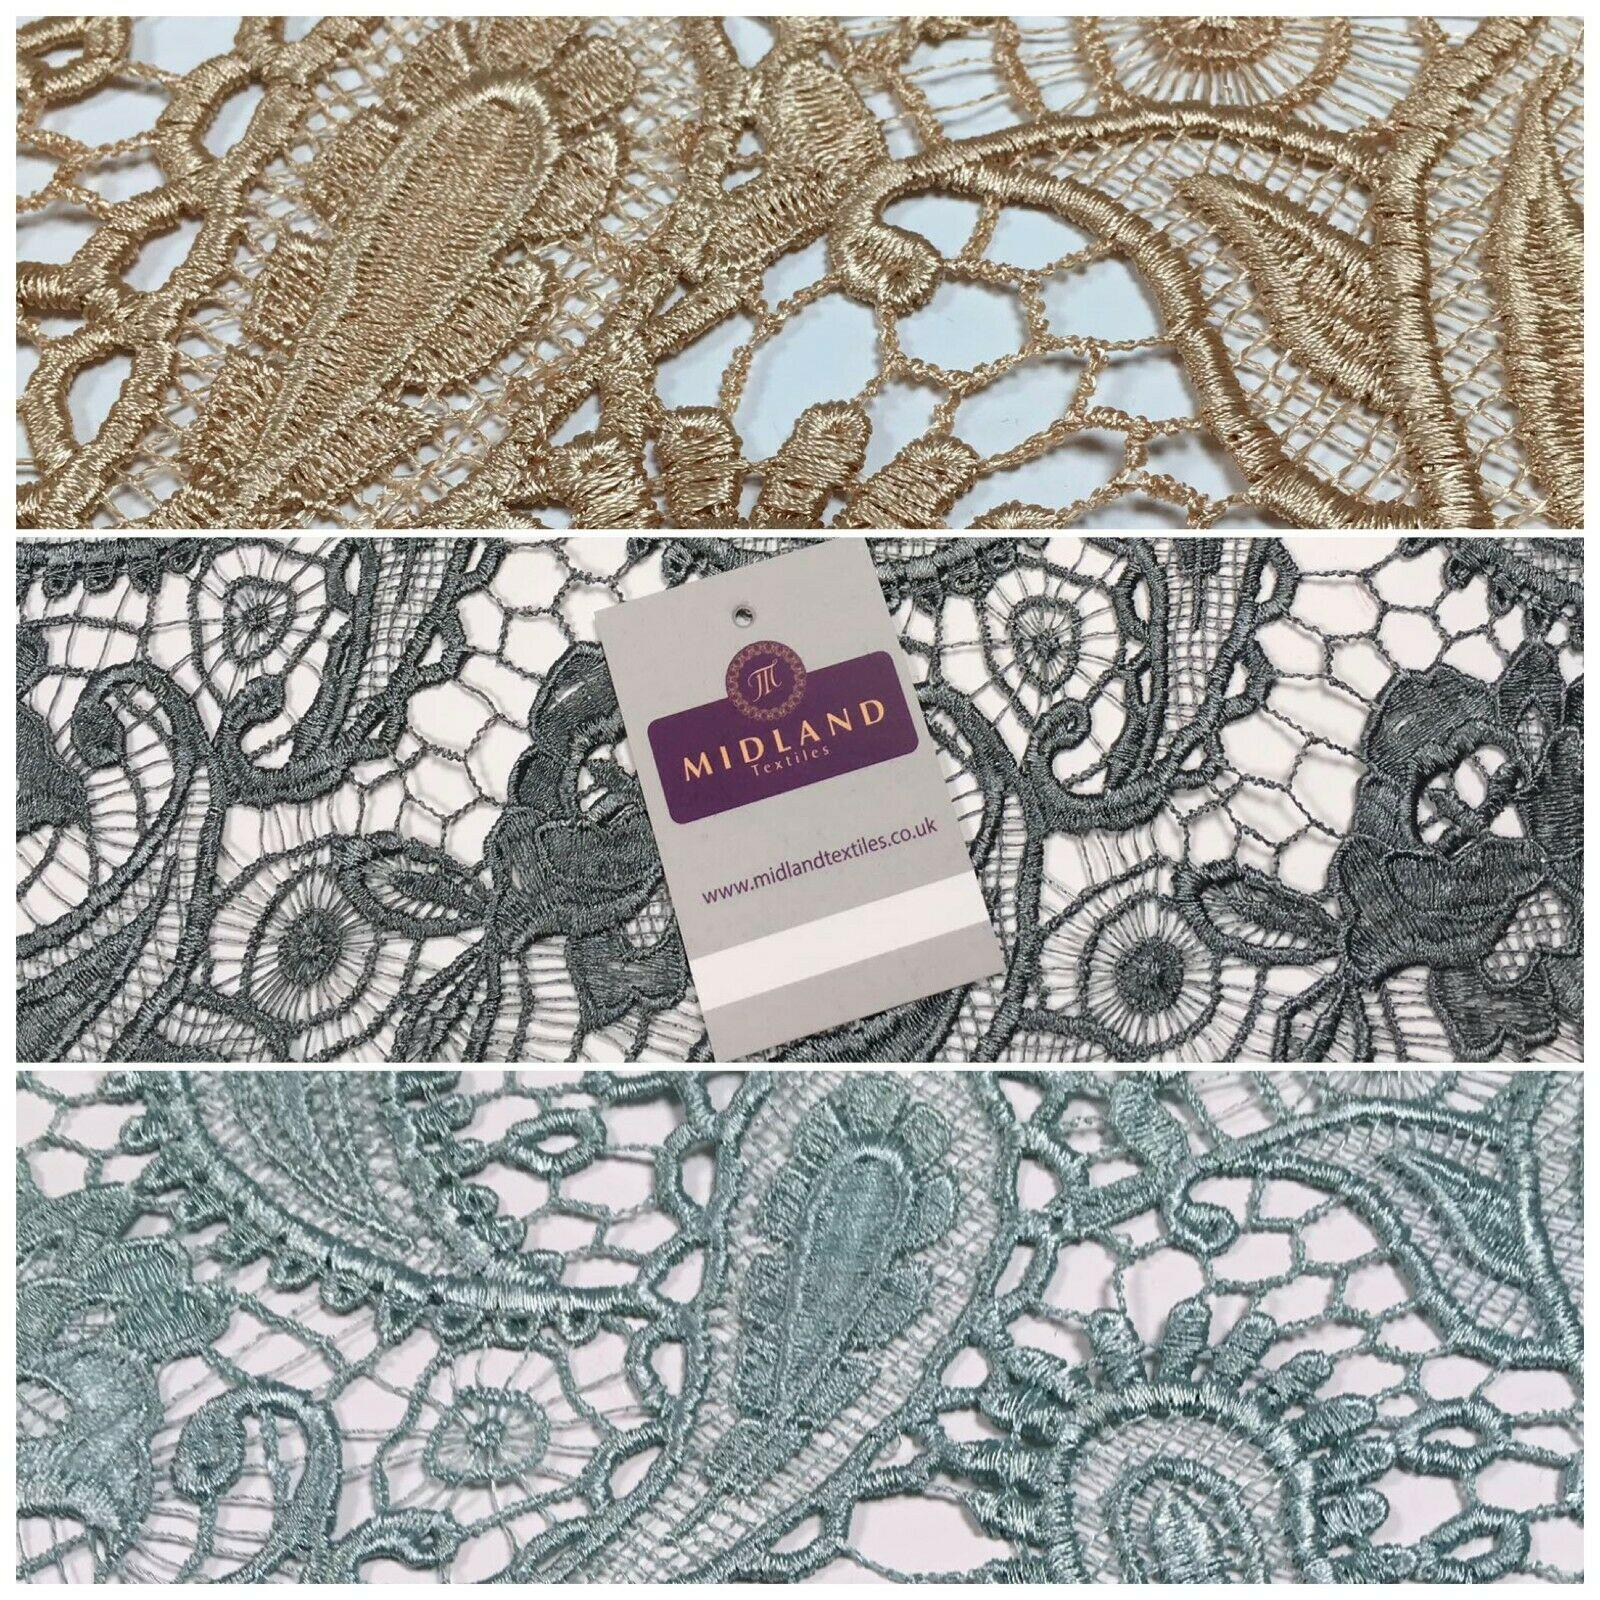 Scalloped Paisley Floral Corded Guipure Lace Dress Fabric 127cm Wide M1136 Mtex